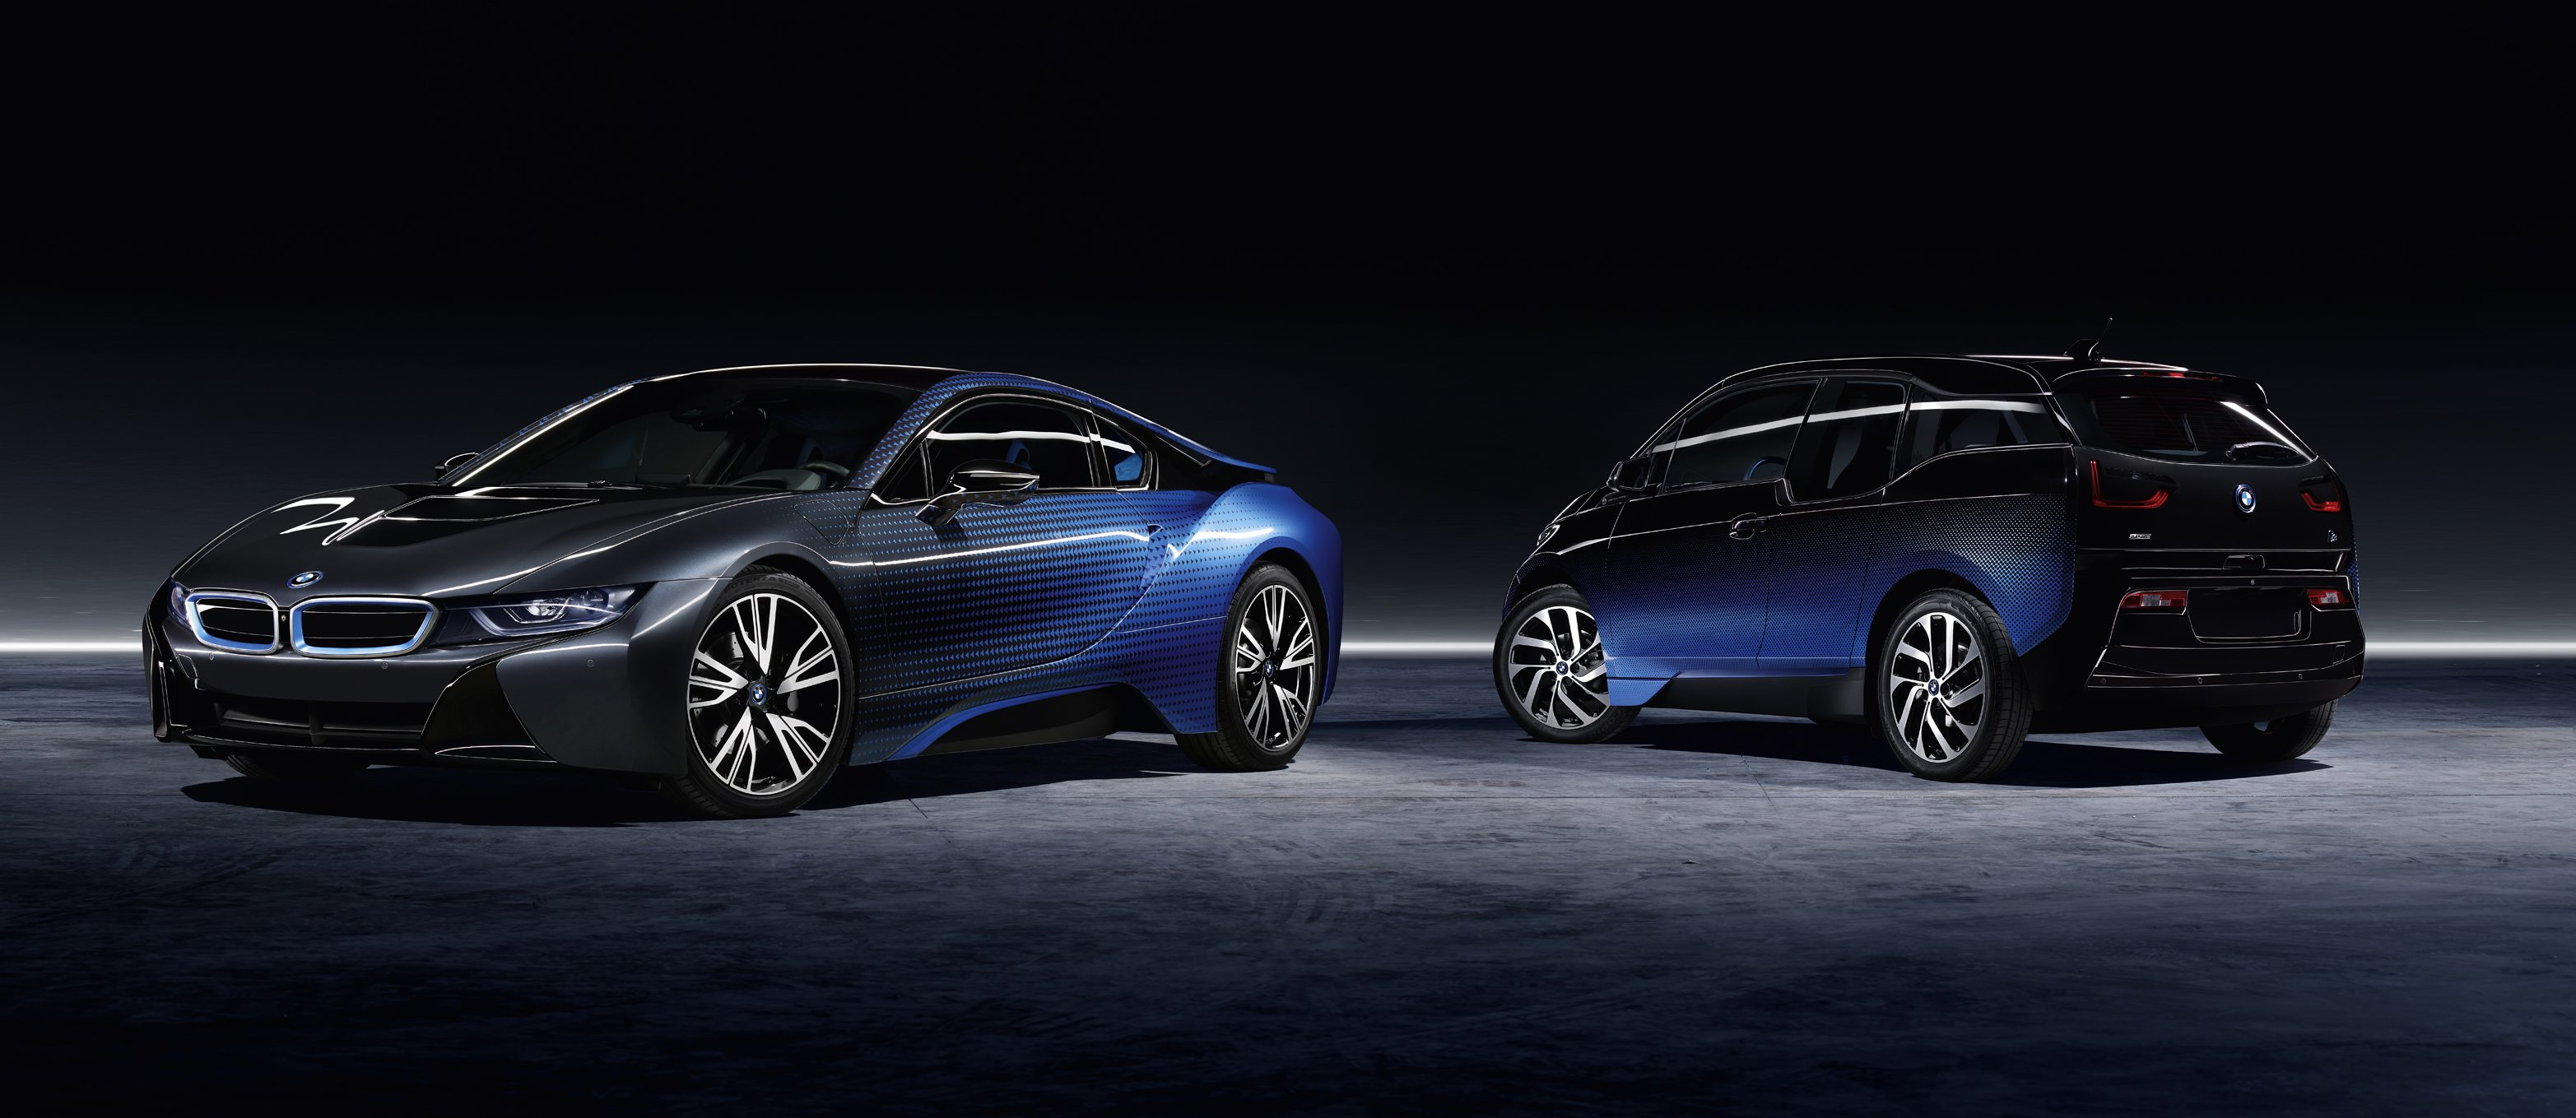 p90235865_highres_bmw-i3-and-bmw-i8-ga-1